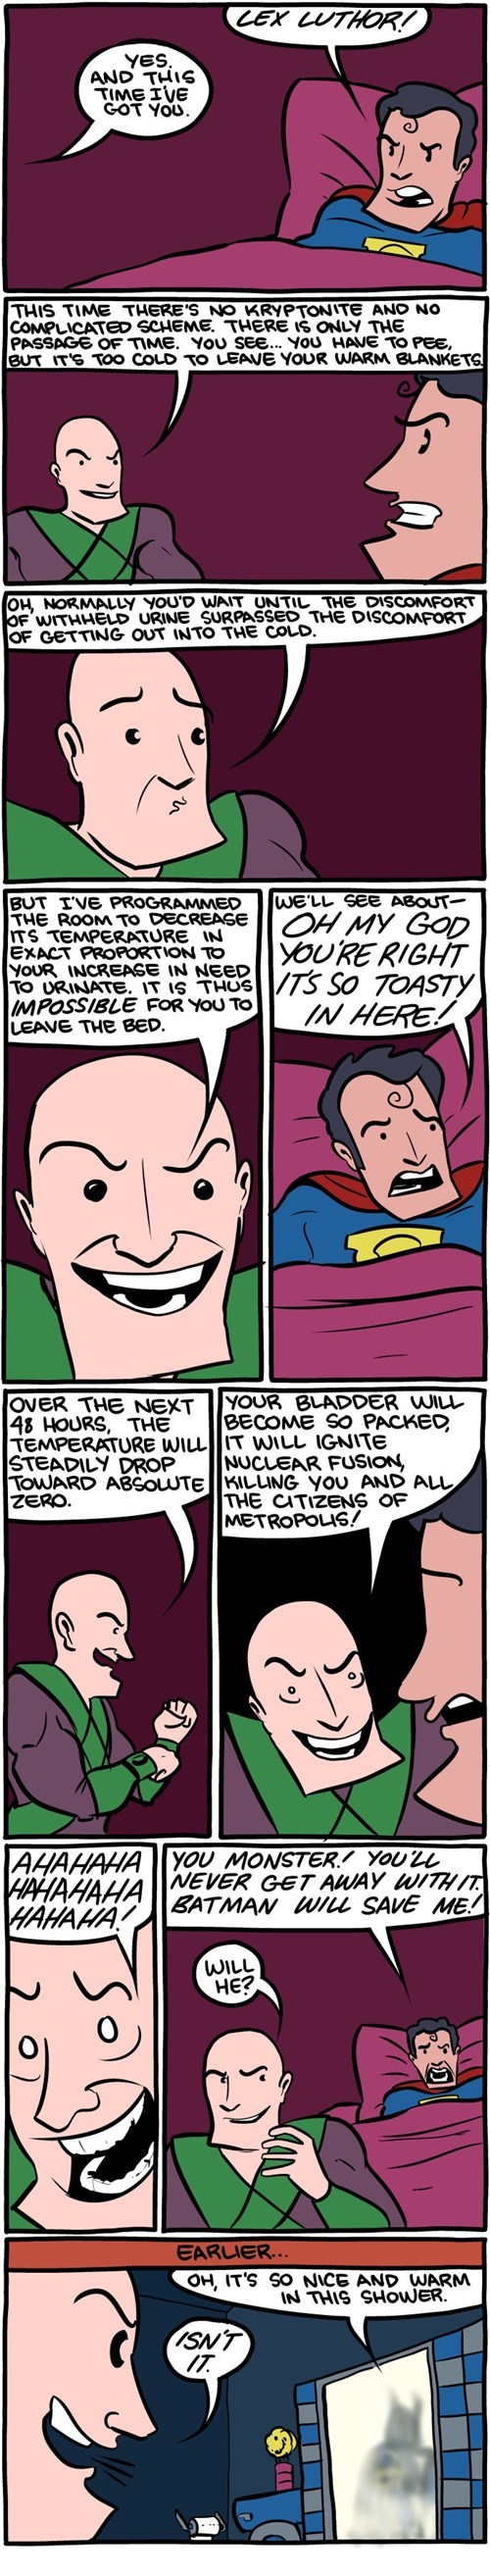 The Plot of The New Batman vs. Superman Movie